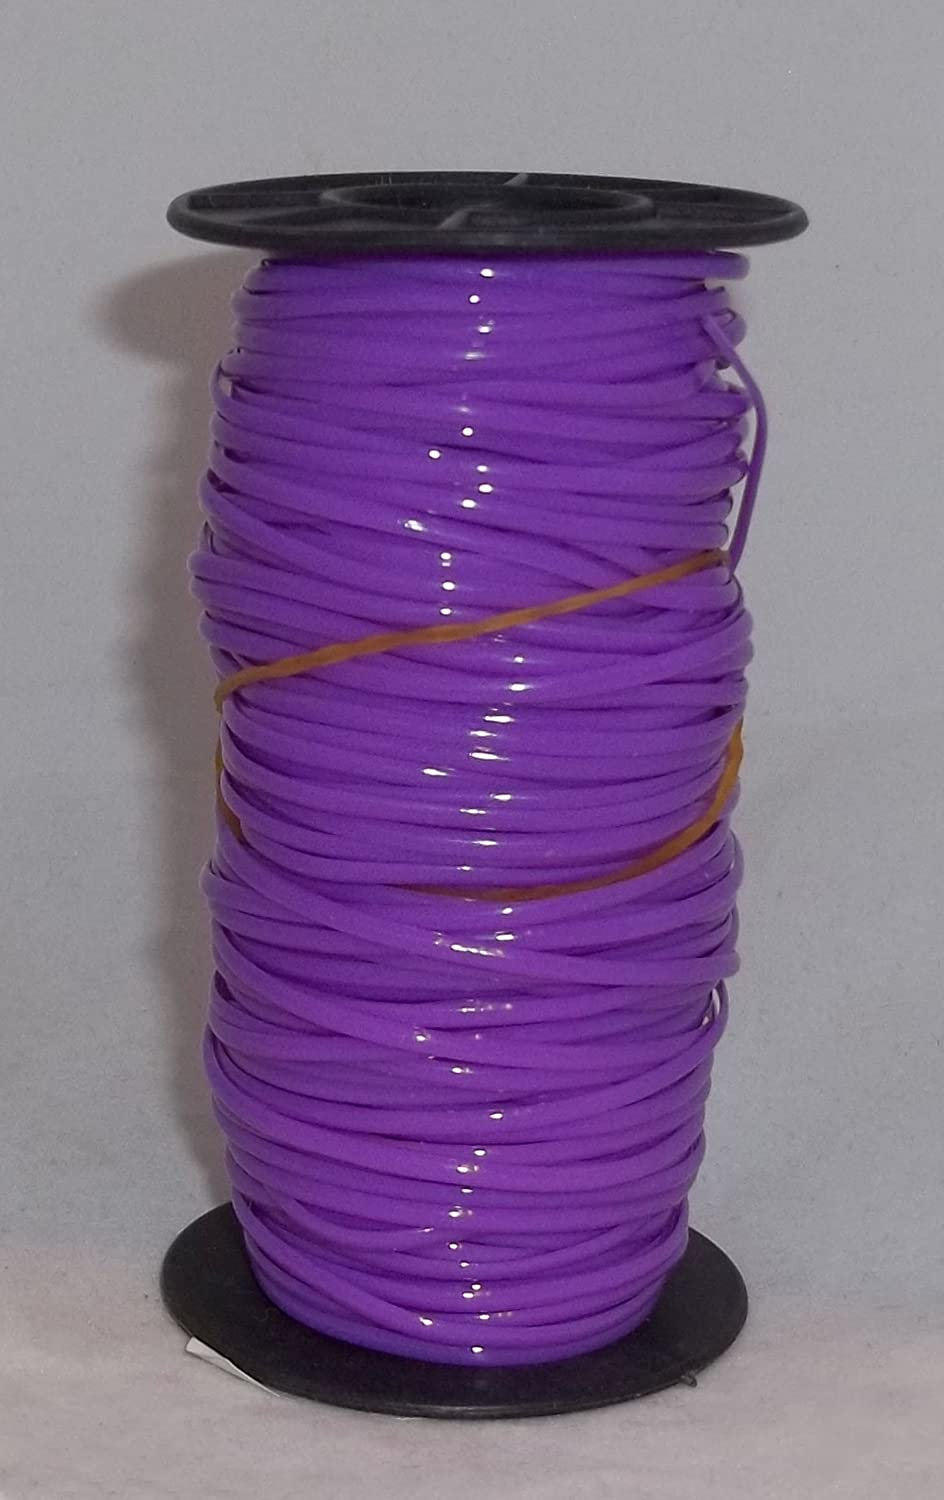 (PURPLE) 100 Yards per Roll PLASTIC CORDING Gimp Lacing Cord for Jewelry, Beads and Plaiting Crafts - 1 Roll Plastic Cord - PURPLE - RINCO 4337028552